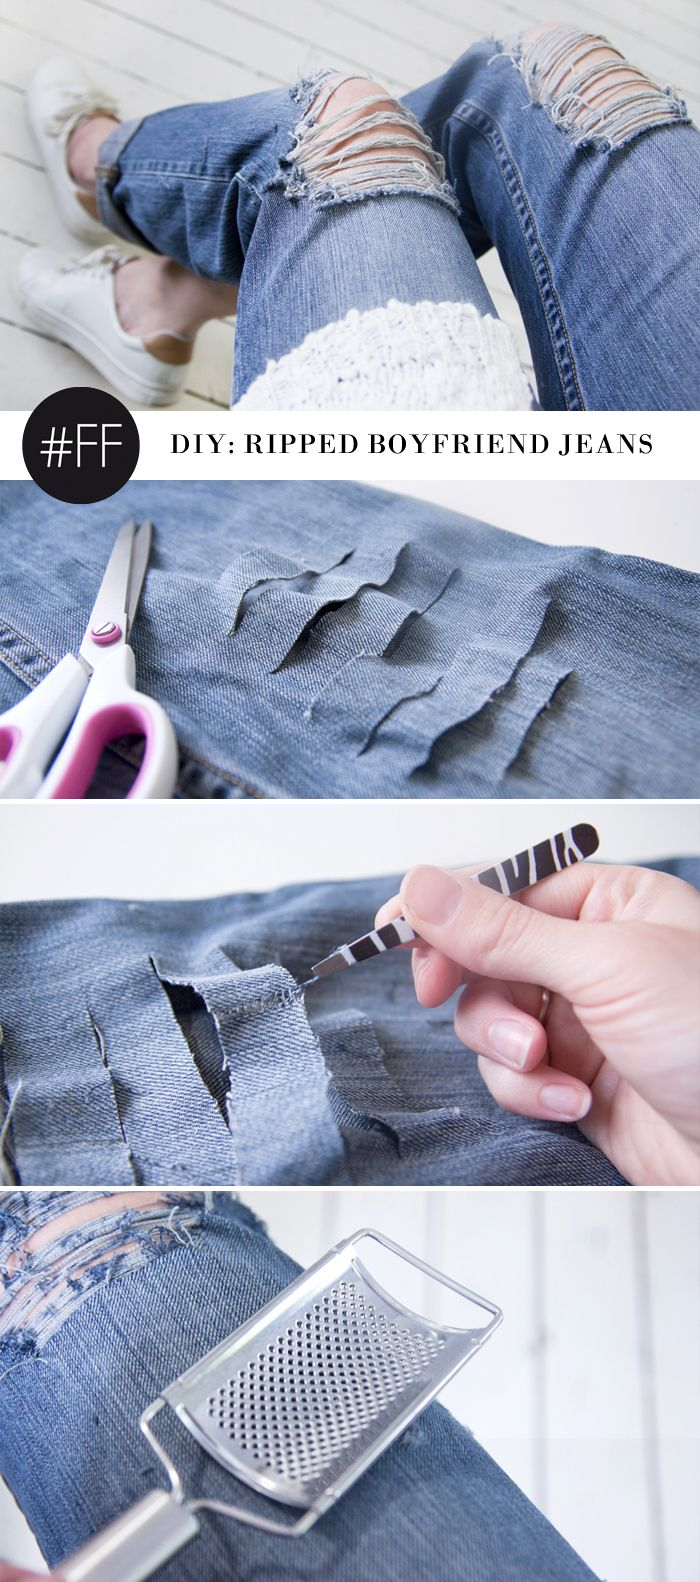 Make it look more rough and worn craft ideas pinterest diy make it look more rough and worn craft ideas pinterest diy shorts altering clothes and fabric yarn solutioingenieria Gallery